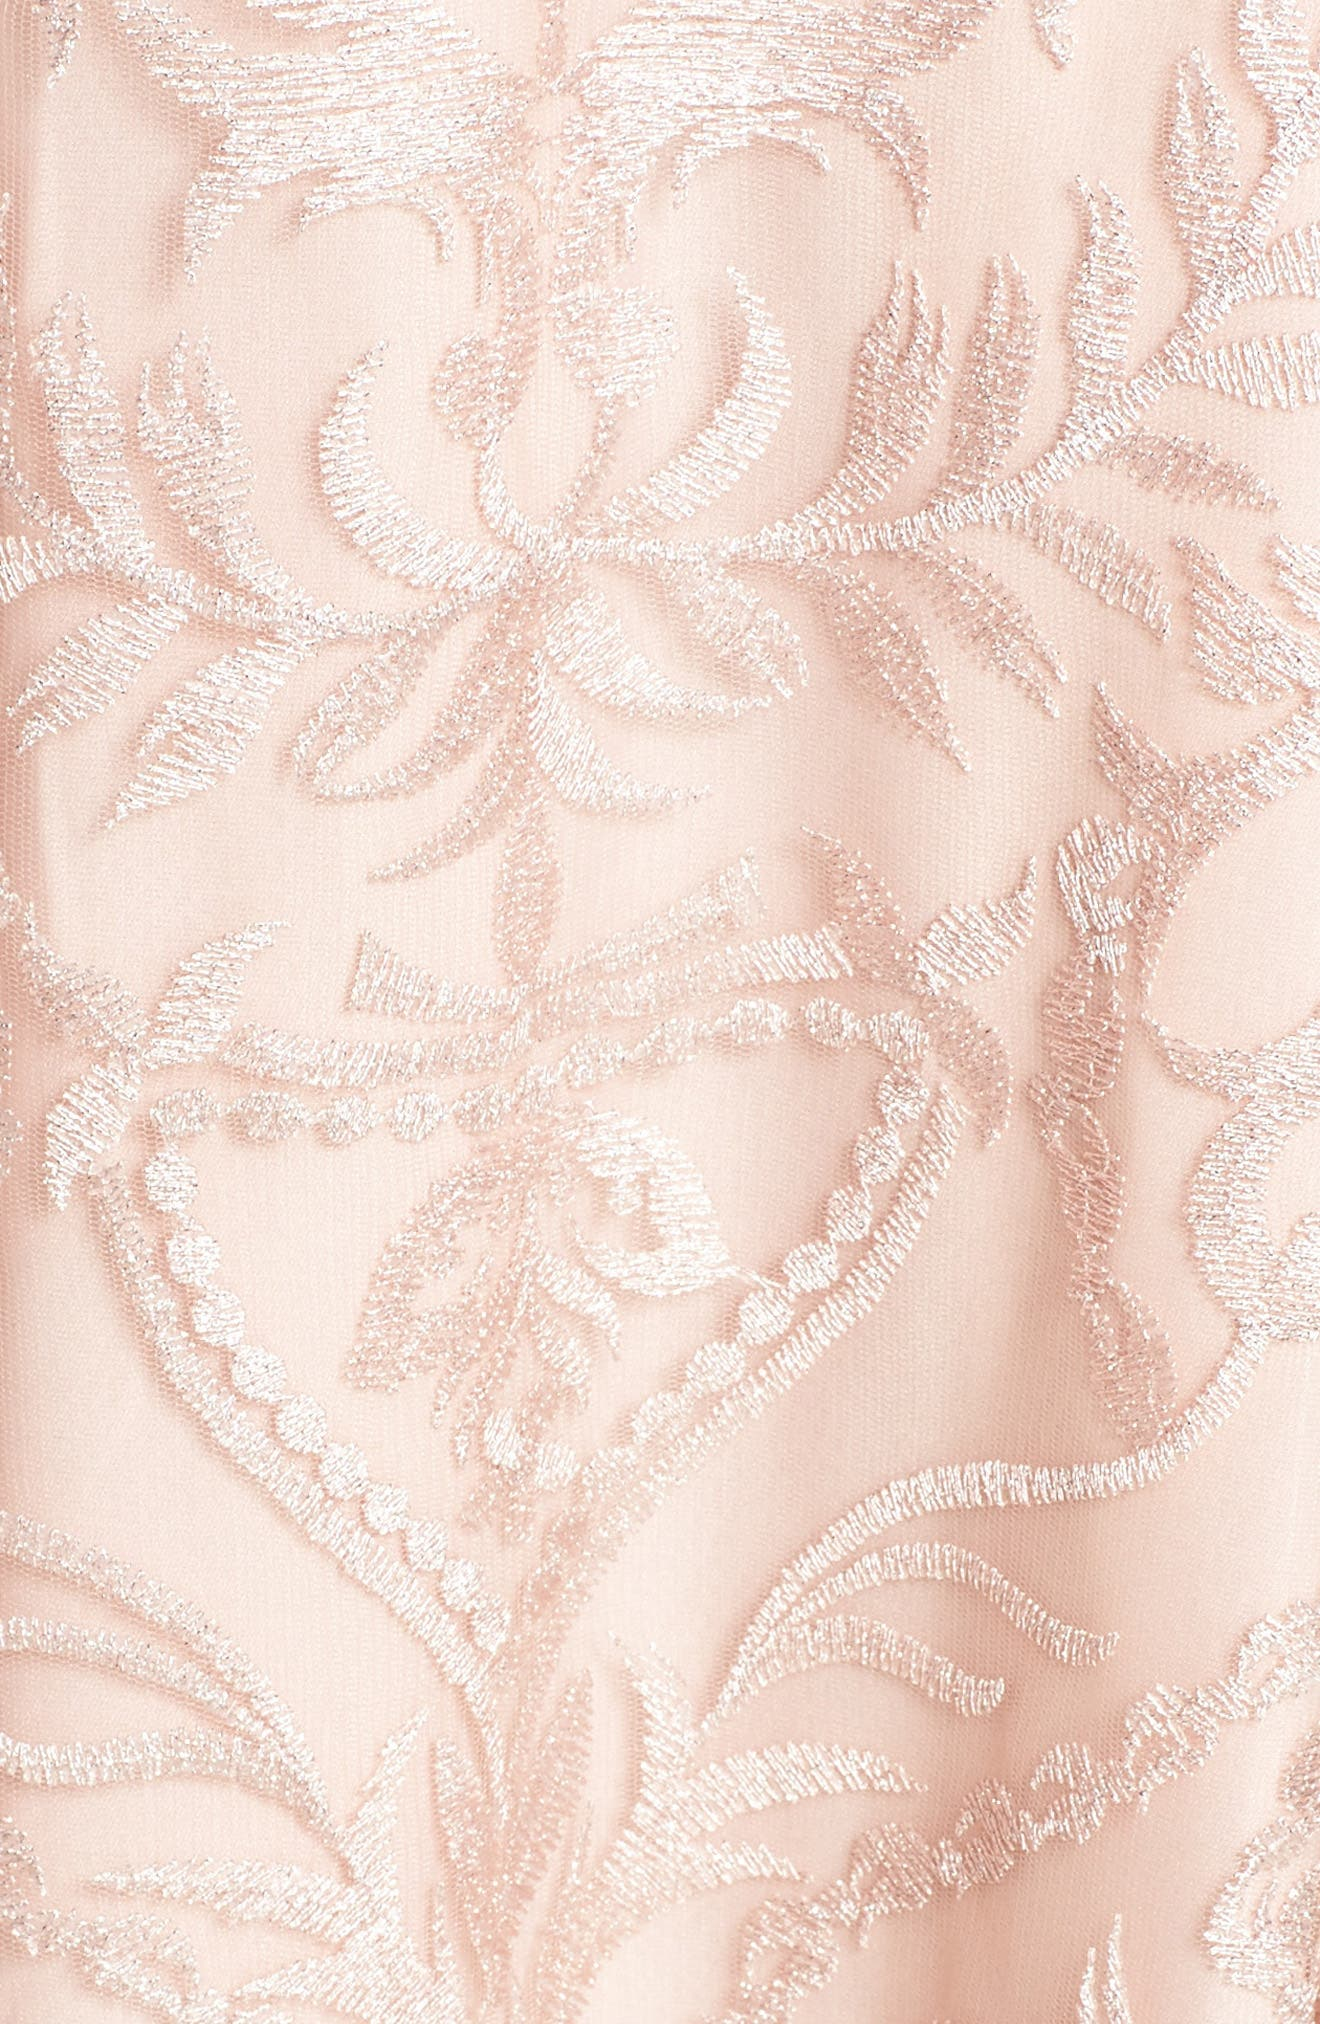 Keyhole Neck Embroidered Ballgown,                             Alternate thumbnail 5, color,                             Blush / Nude